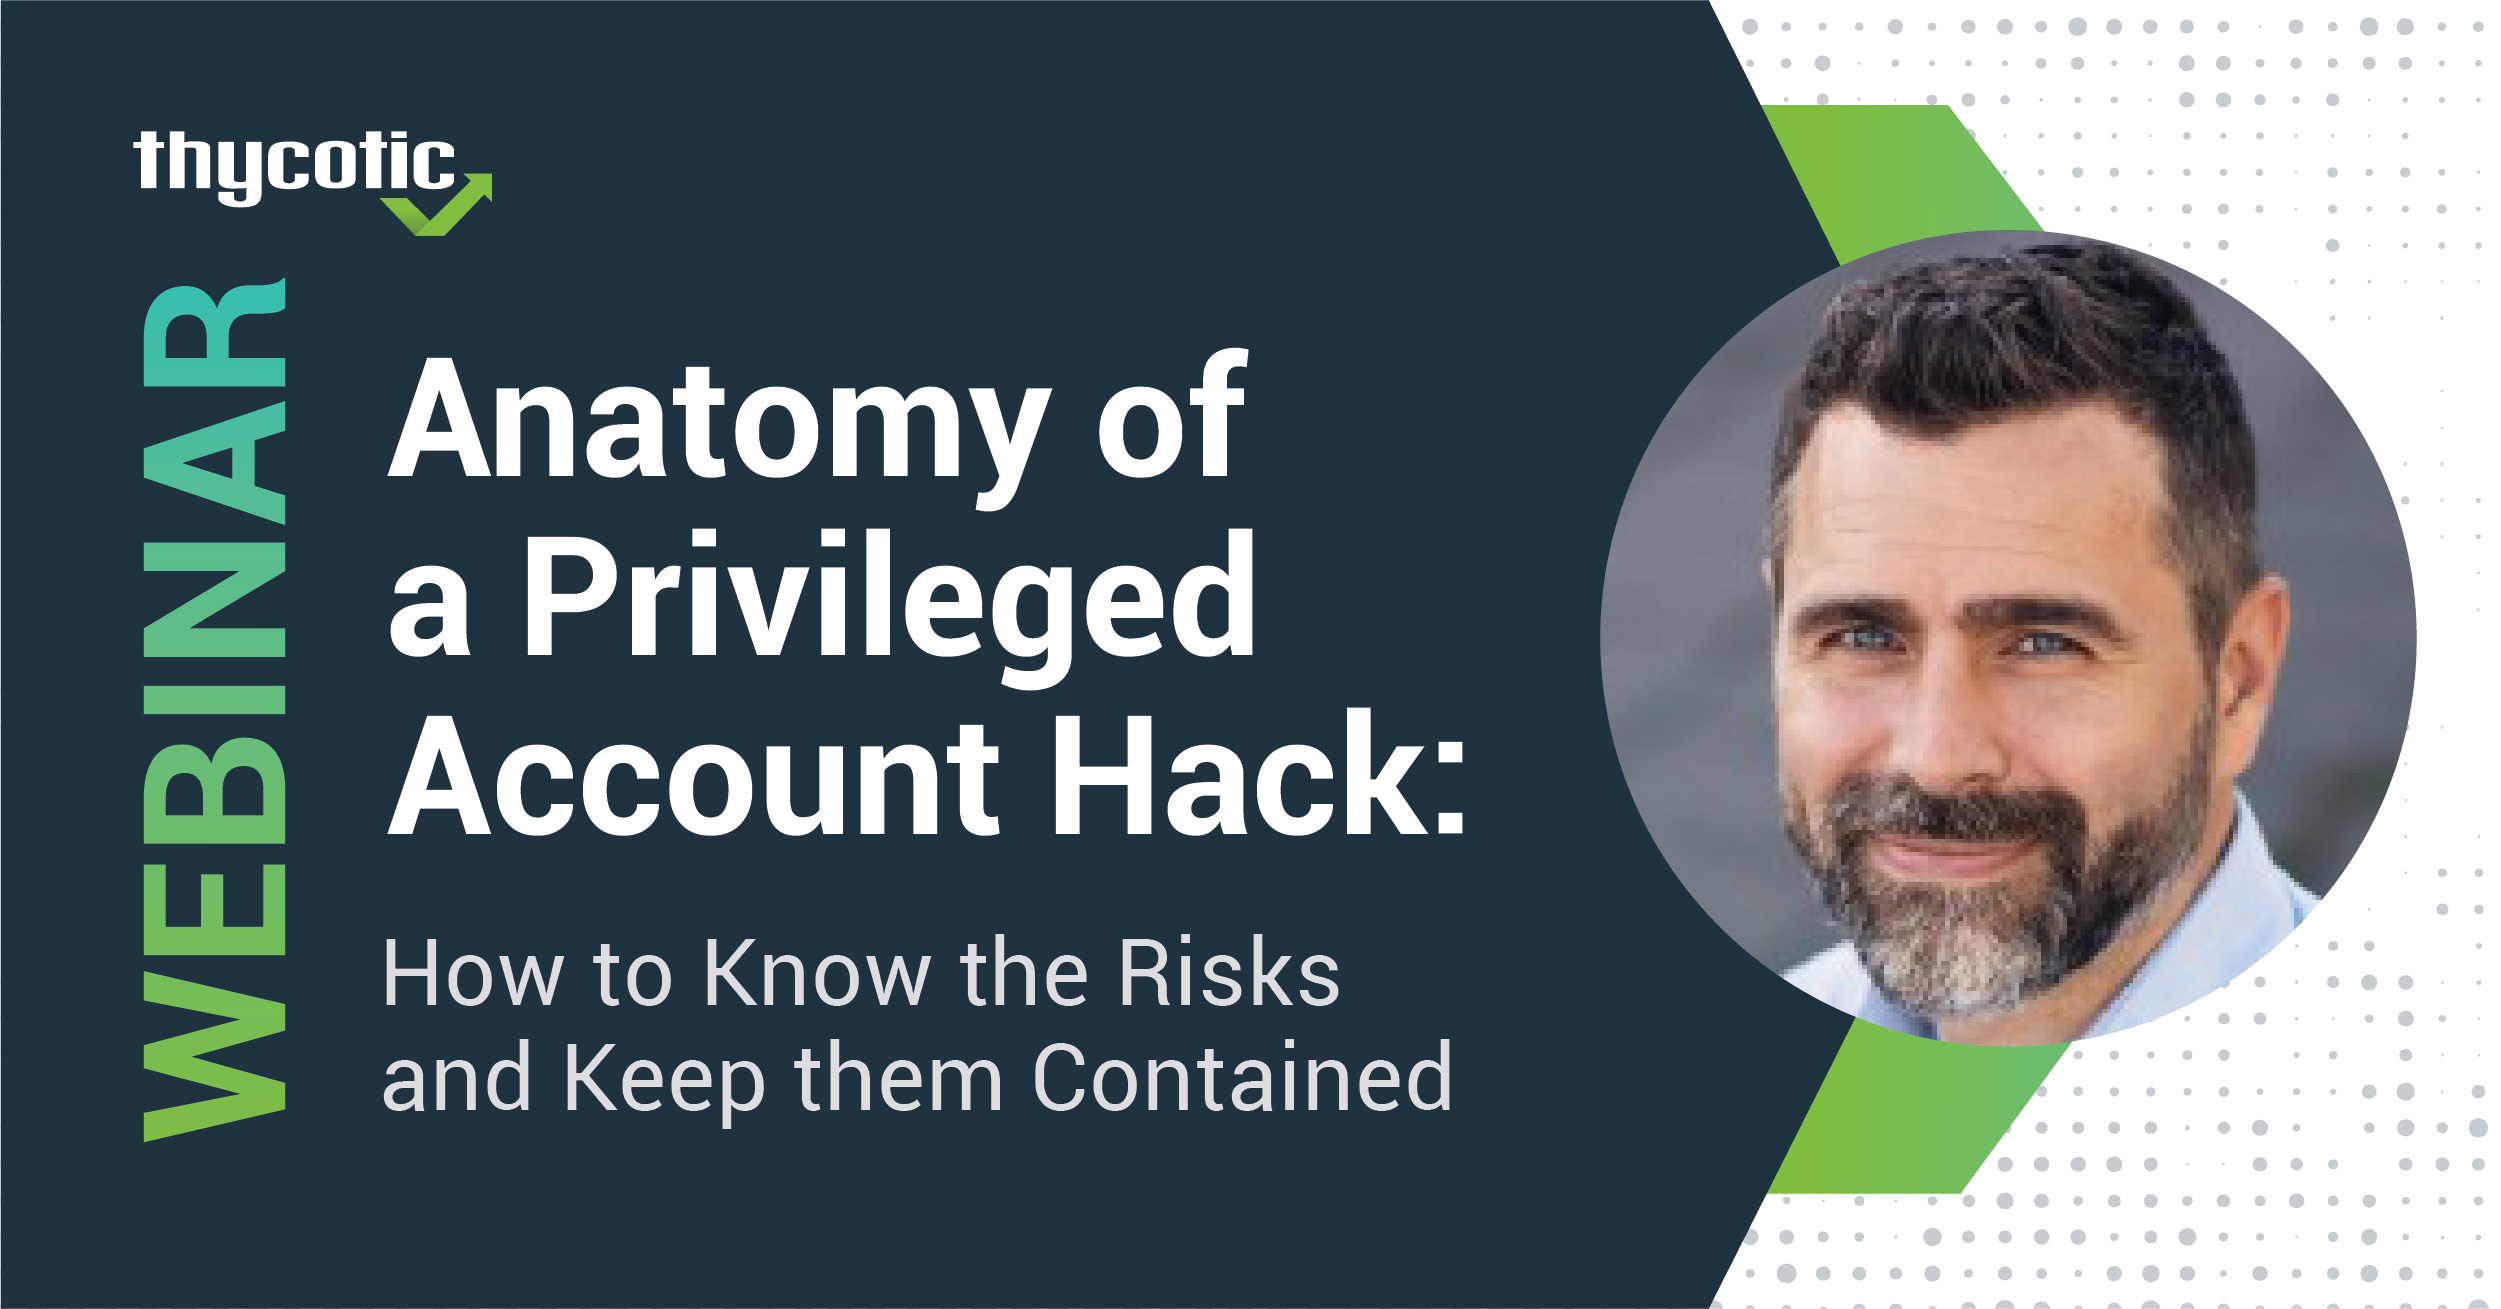 Anatomy of a Privileged Account Hack: How to Know the Risks and Keep them Contained